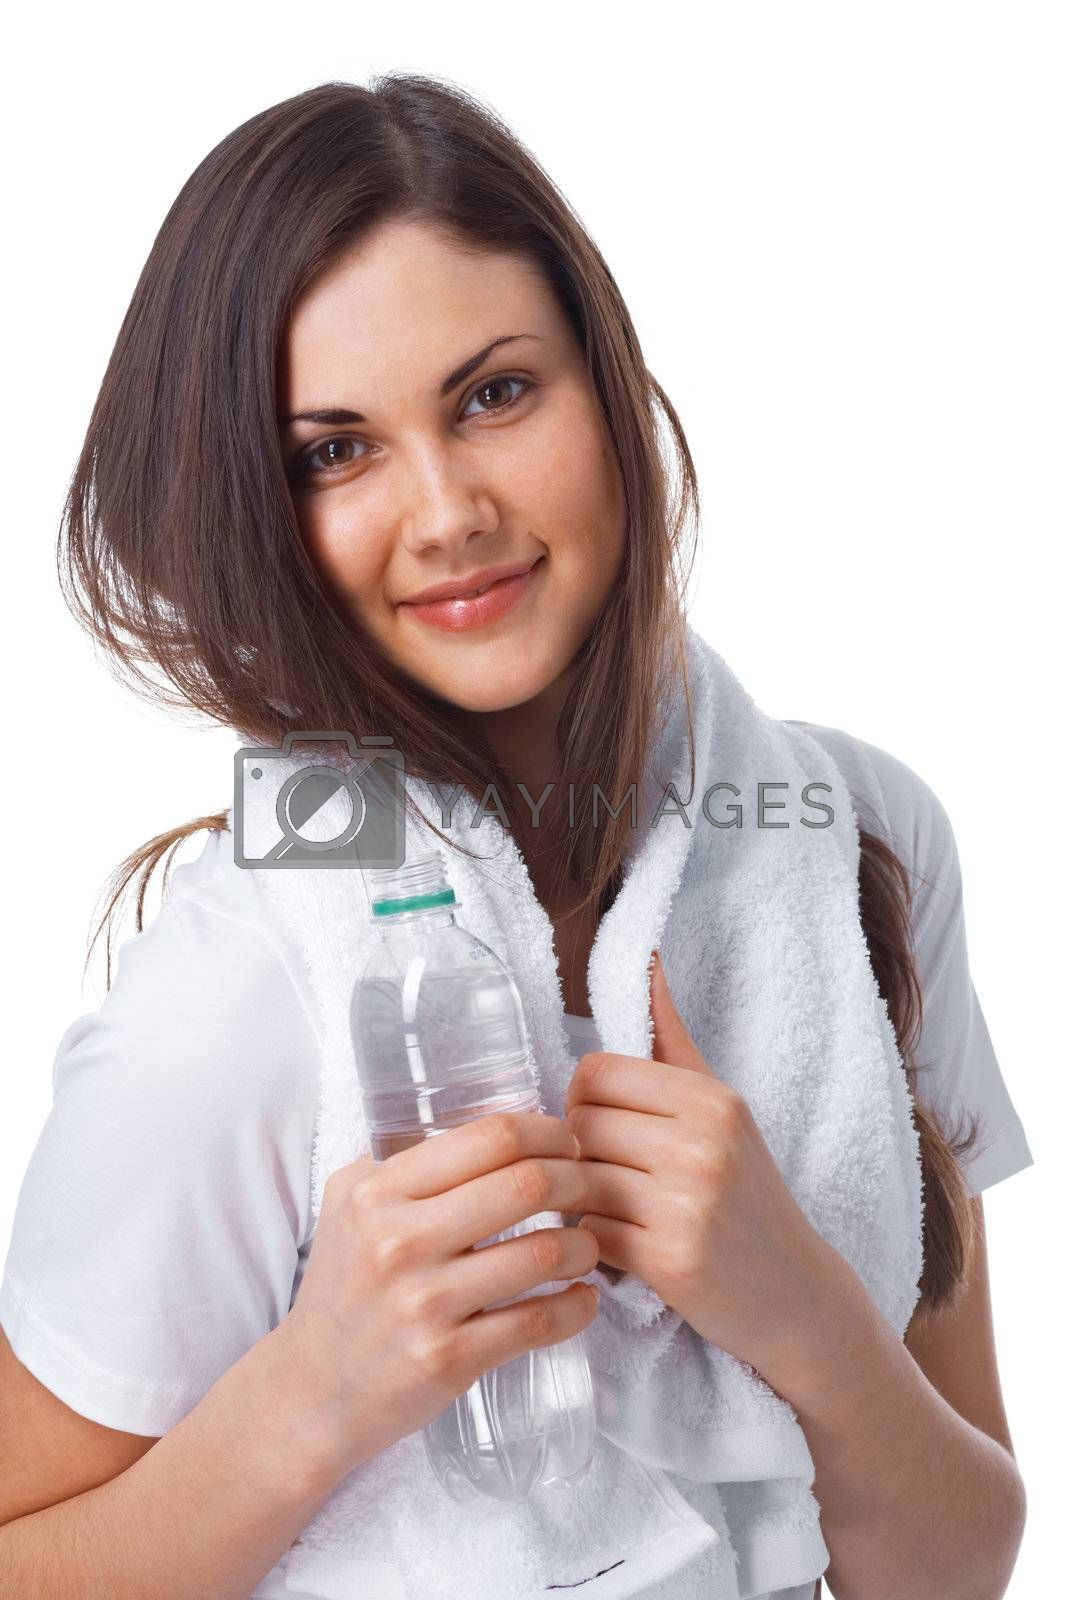 Portrait of a young woman with towel and bottle of water over white